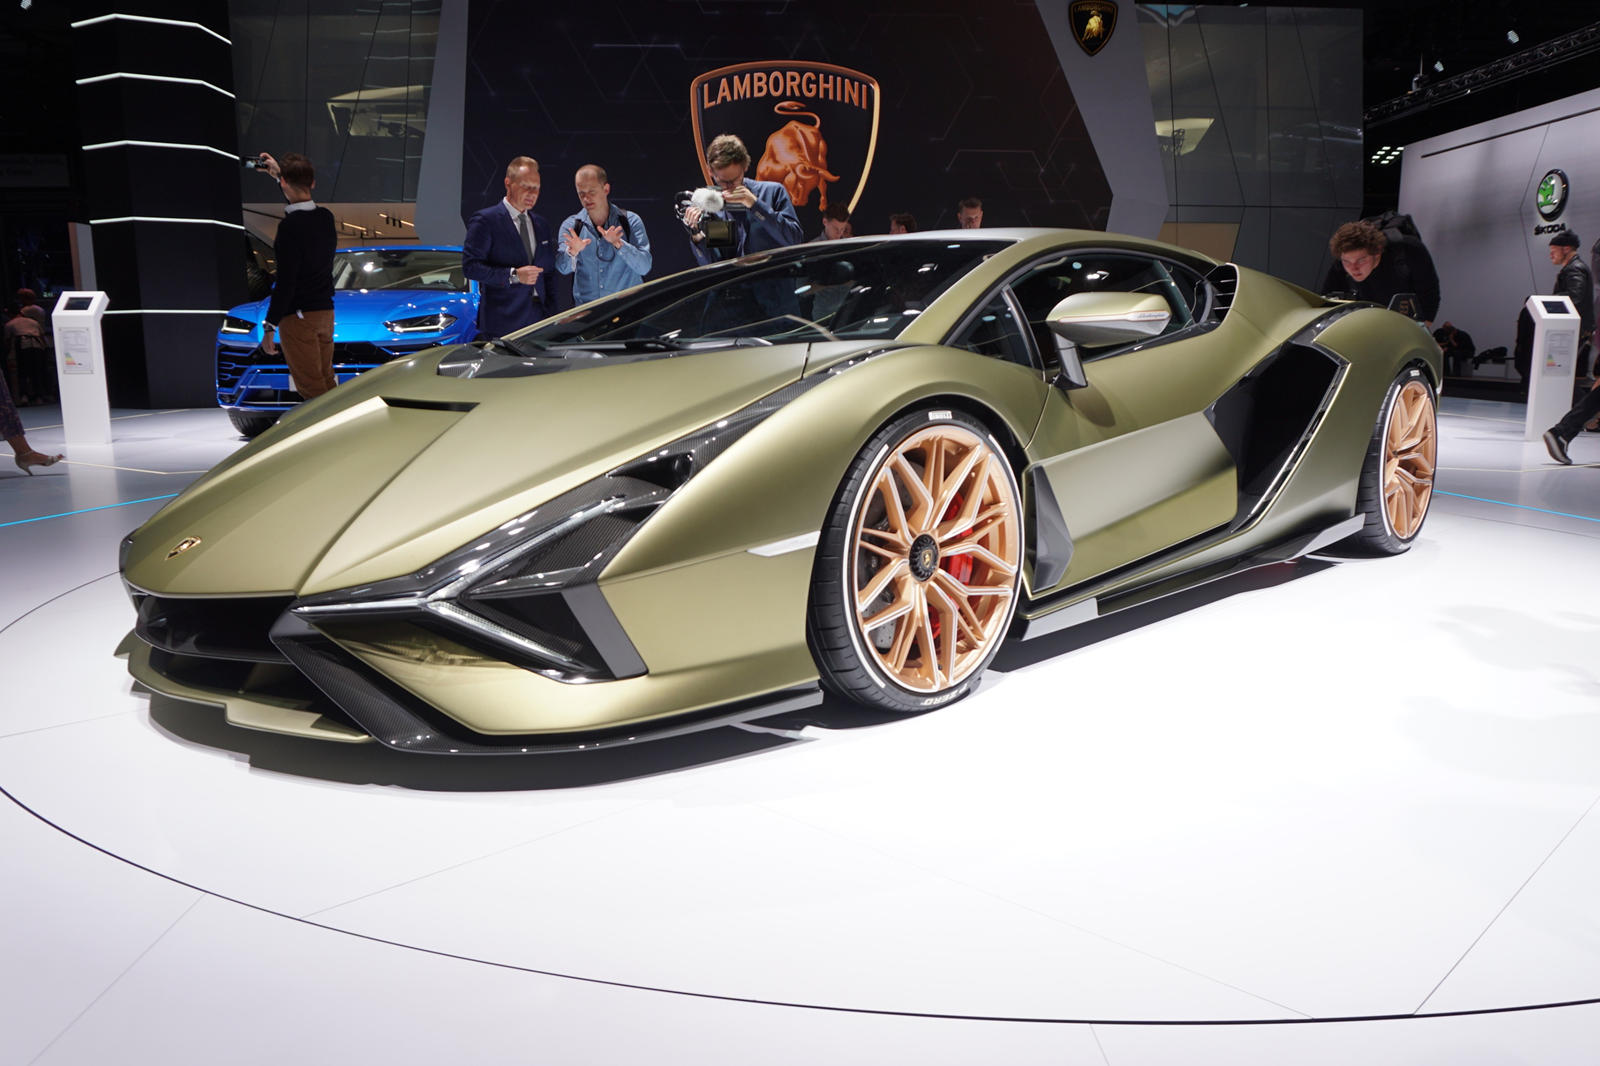 We Get Up Close And Personal With The Insane Lamborghini Sian